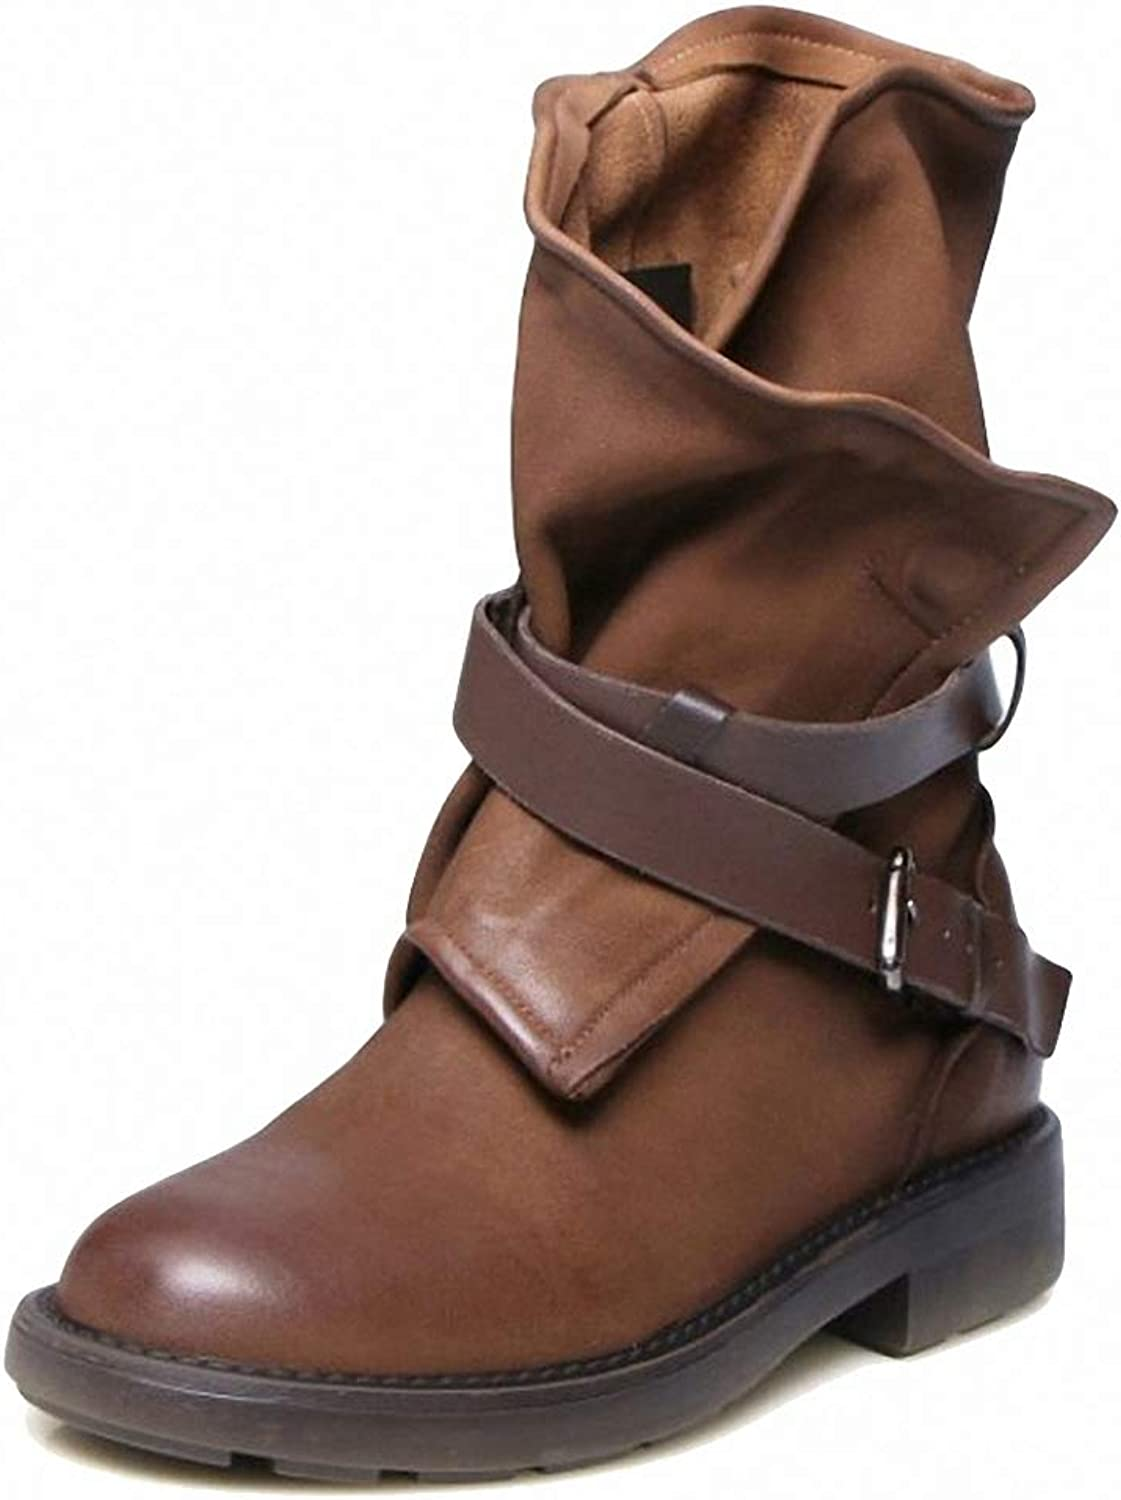 York Zhu Women Boots,Buckle Strap Fashion Winter Boots Chunky Heel Combat Boot